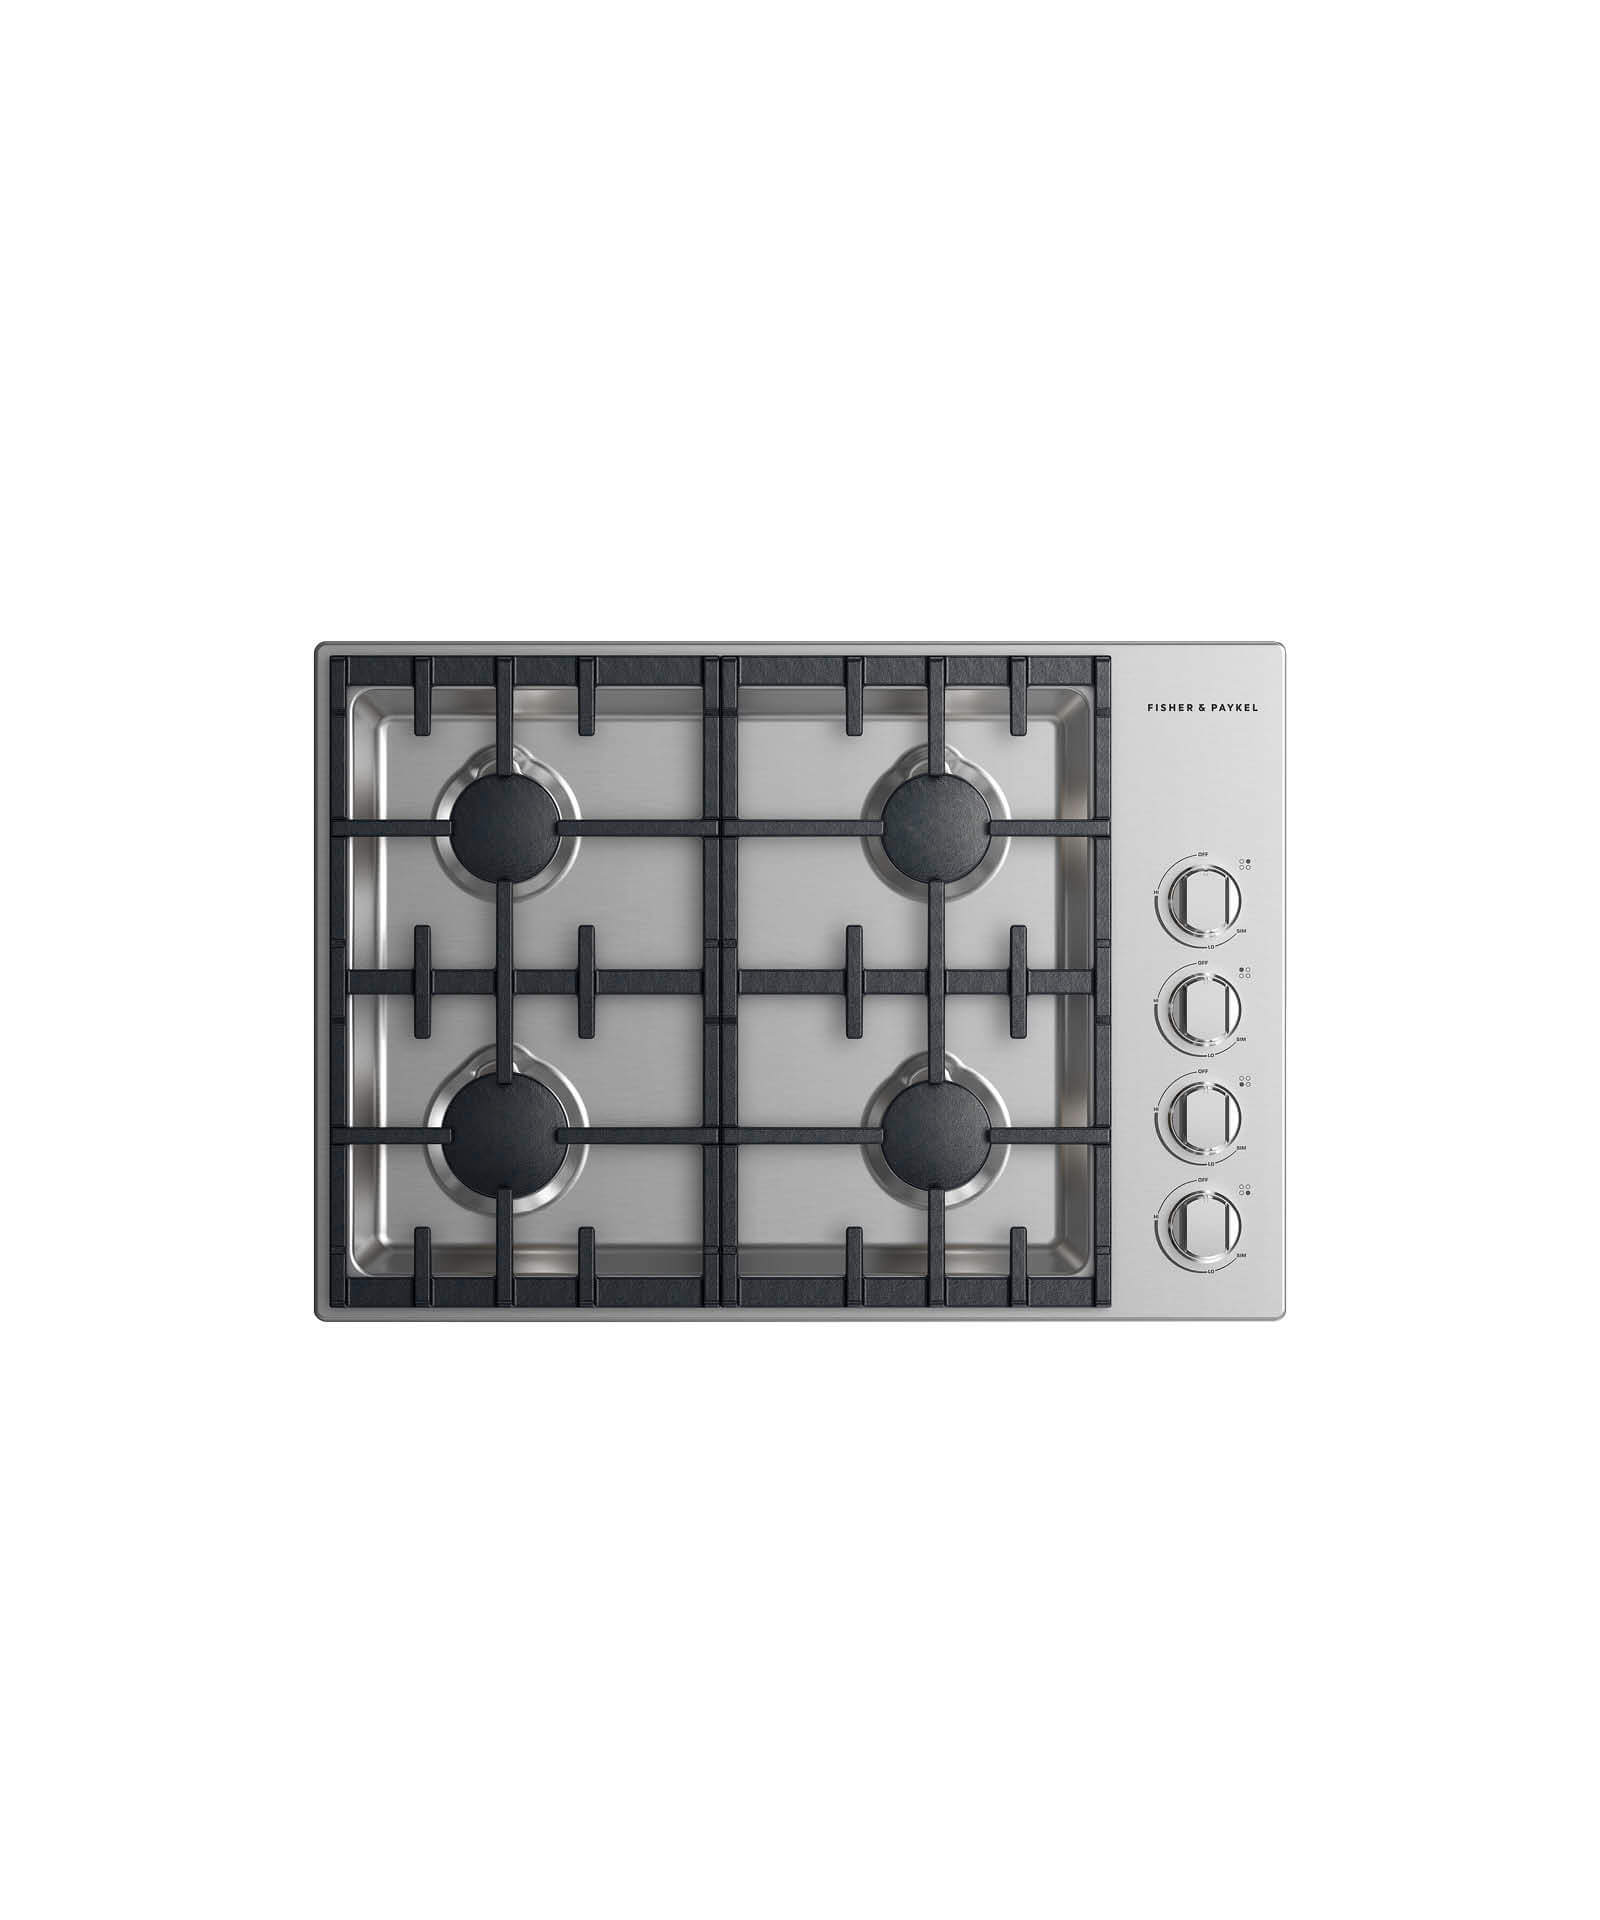 "Fisher and Paykel Gas Cooktop 30"", 4 burner"